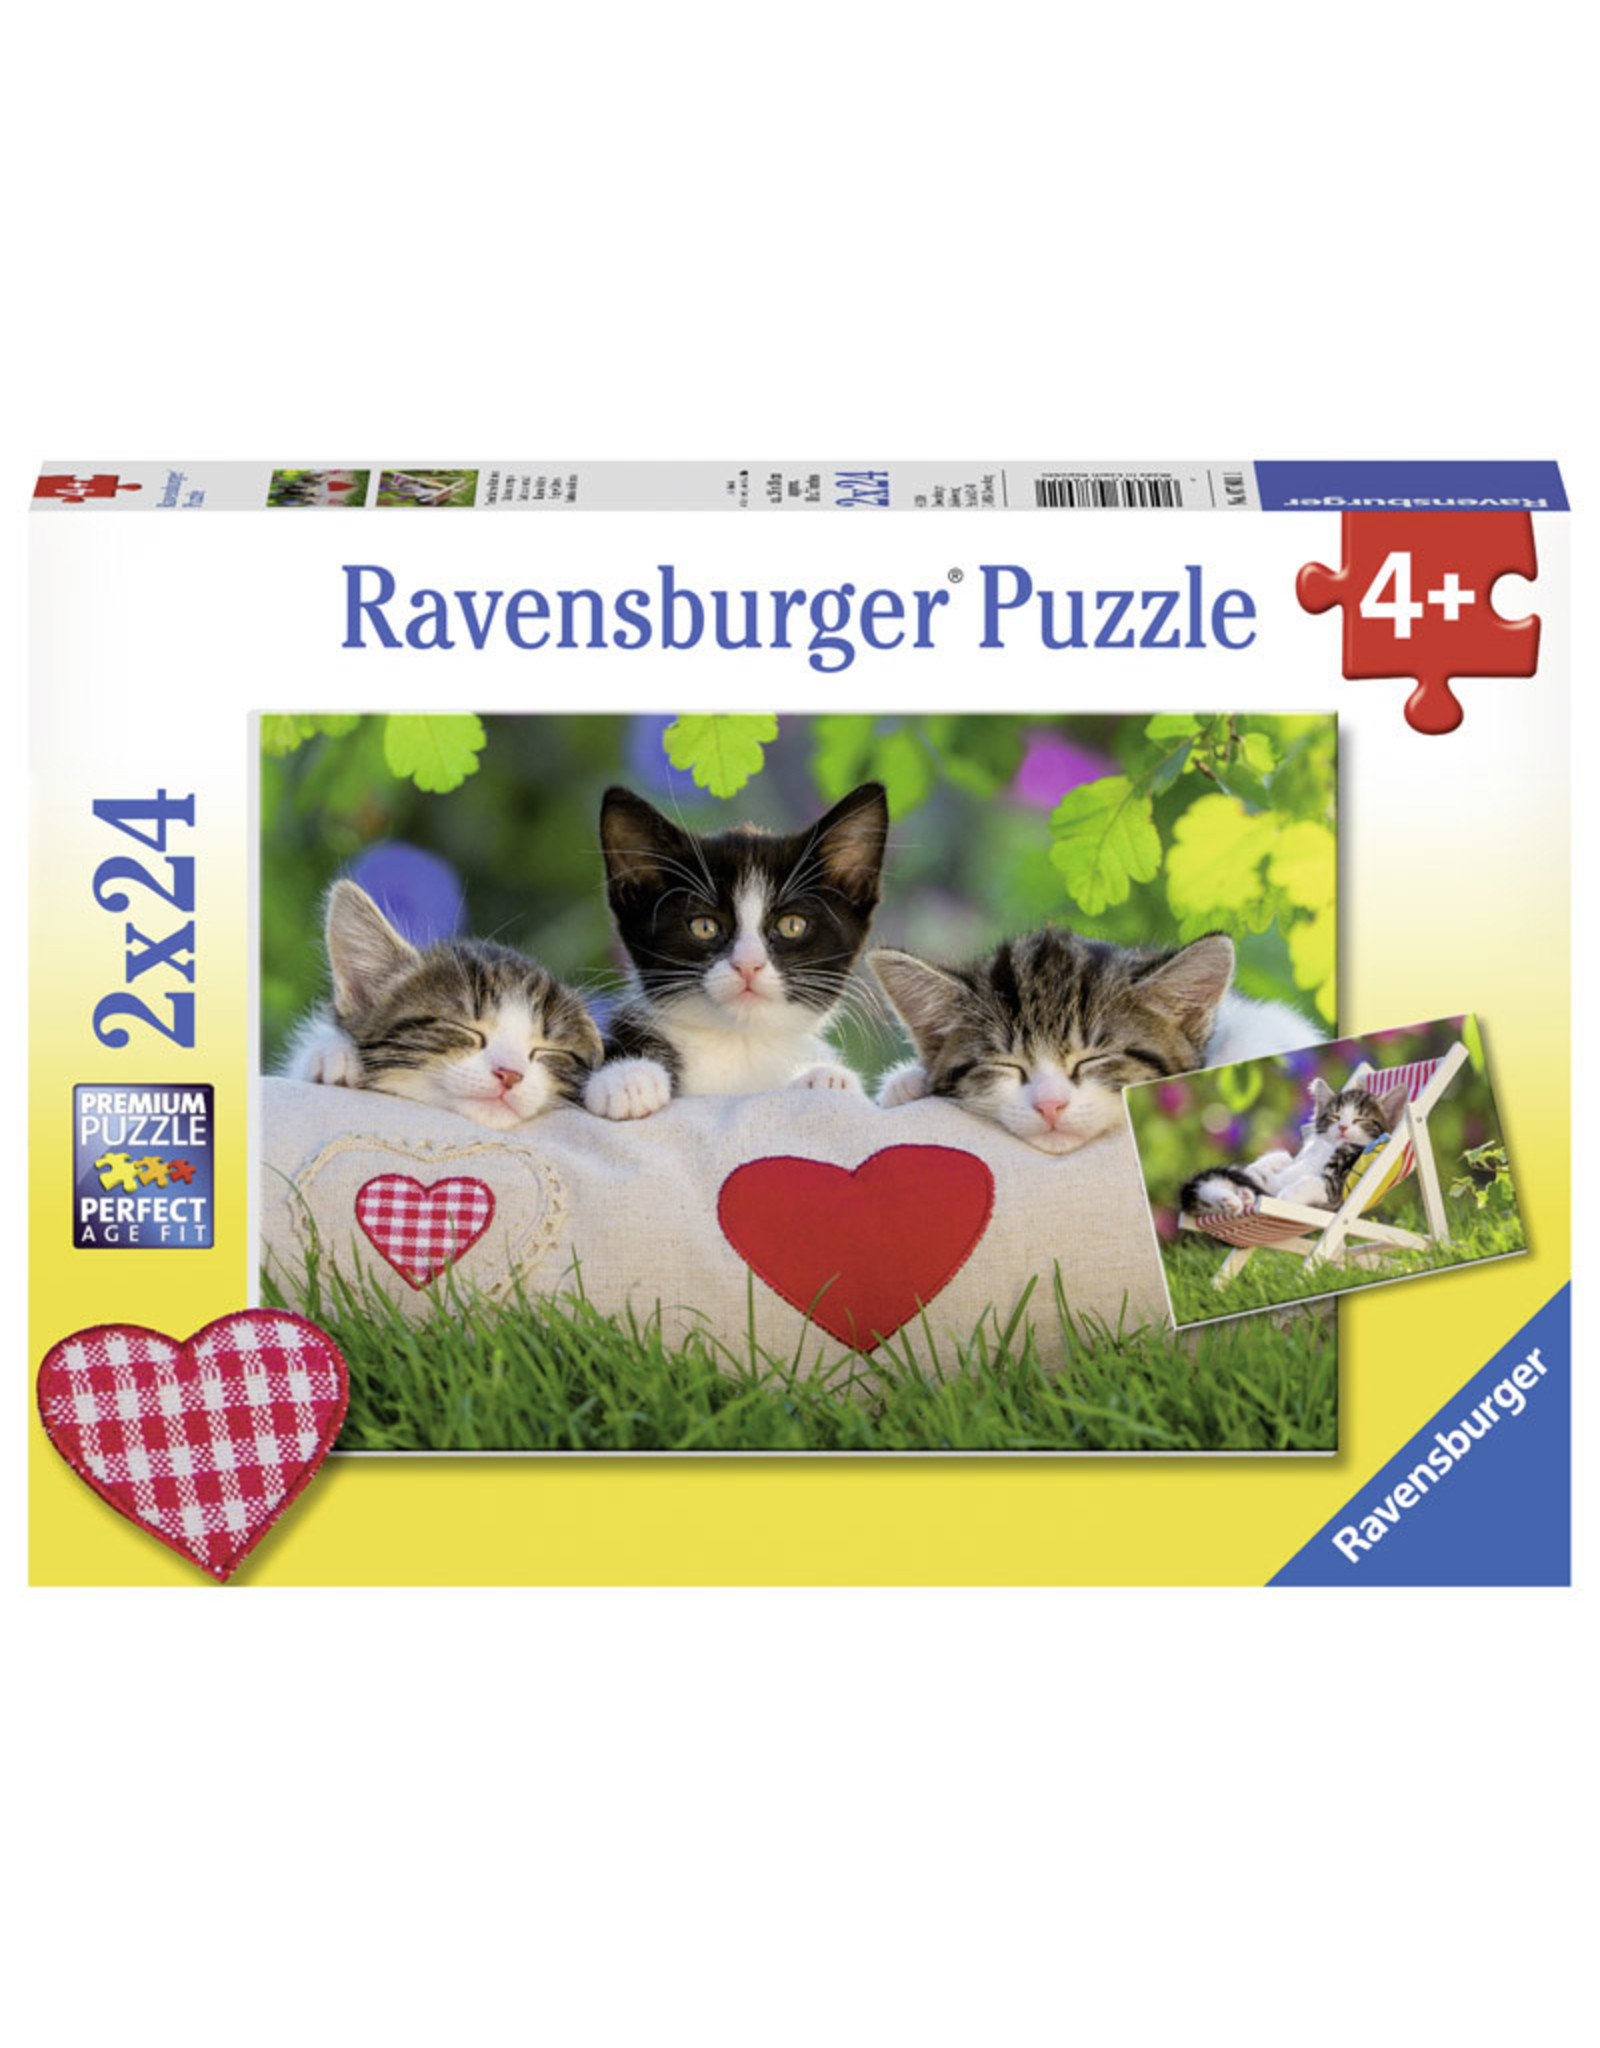 Ravensburger Sleepy Kitten 24pc